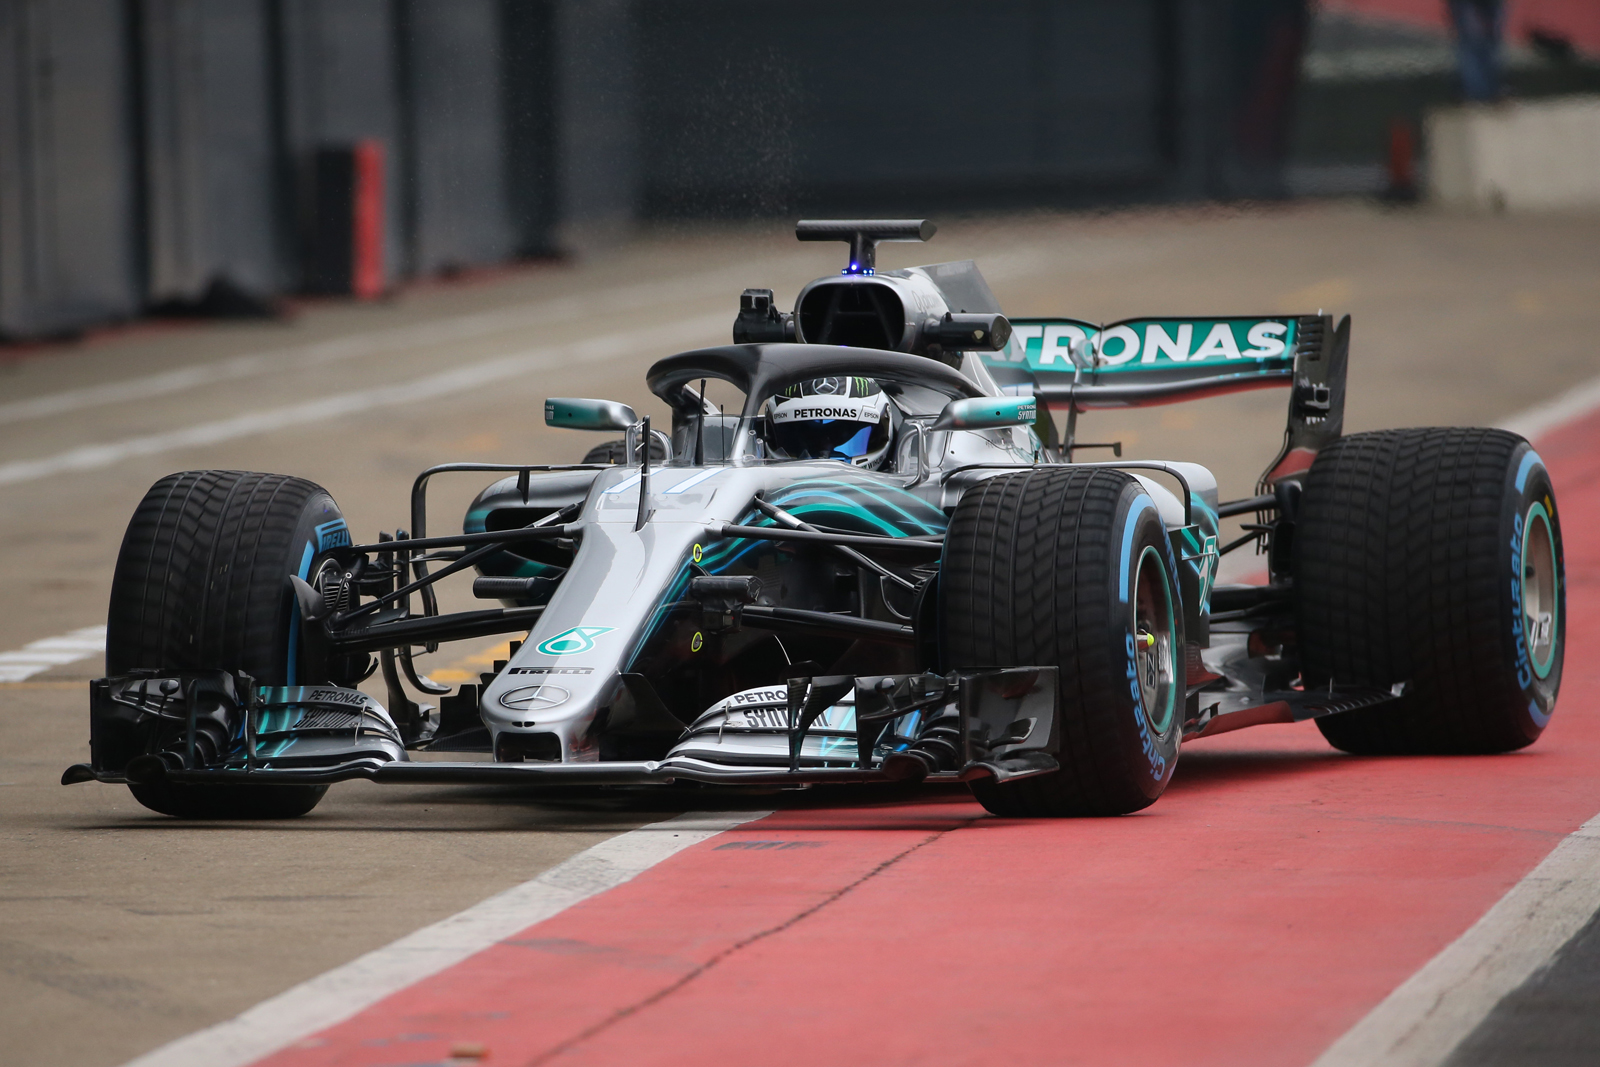 The Latest Mercedes Amg F1 Car Looks Absolutely Bonkers